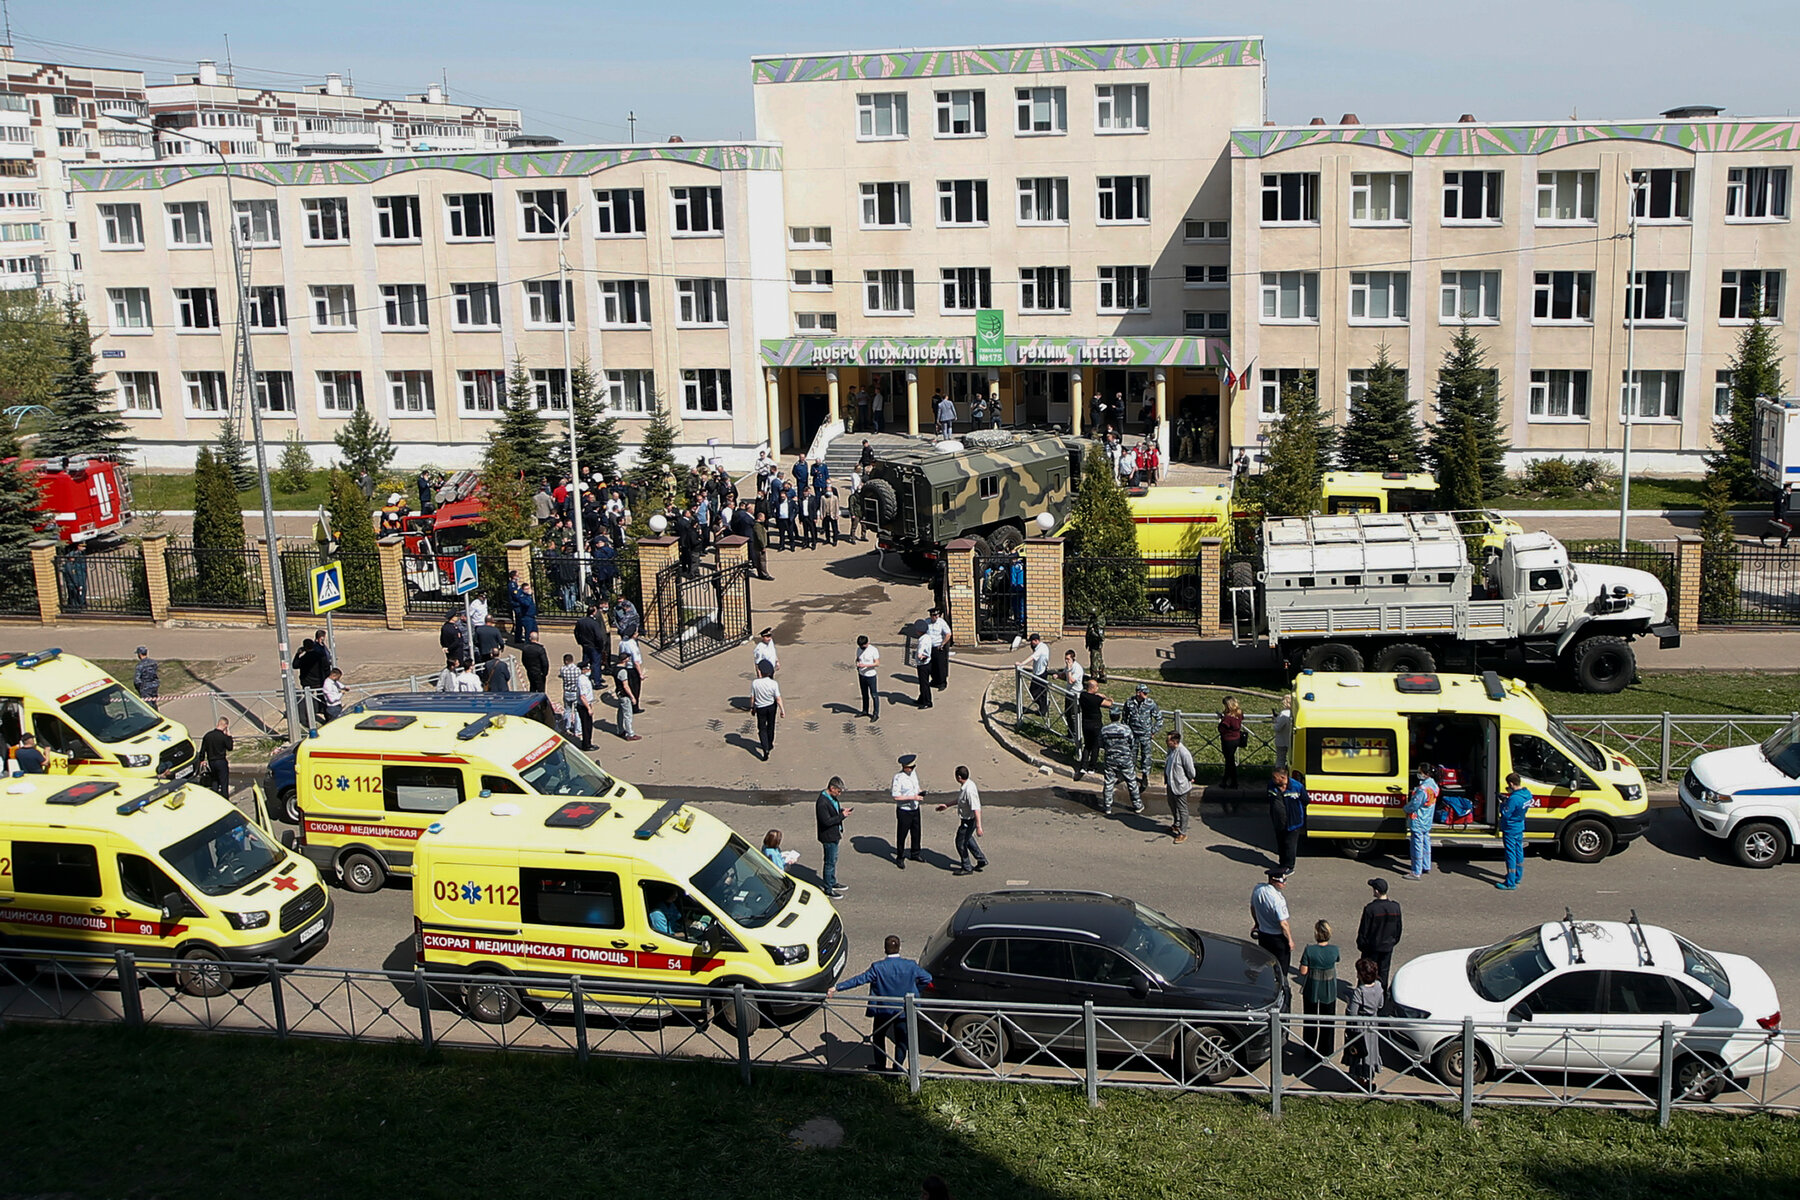 More than 10 Dead After Shooting at Russian School